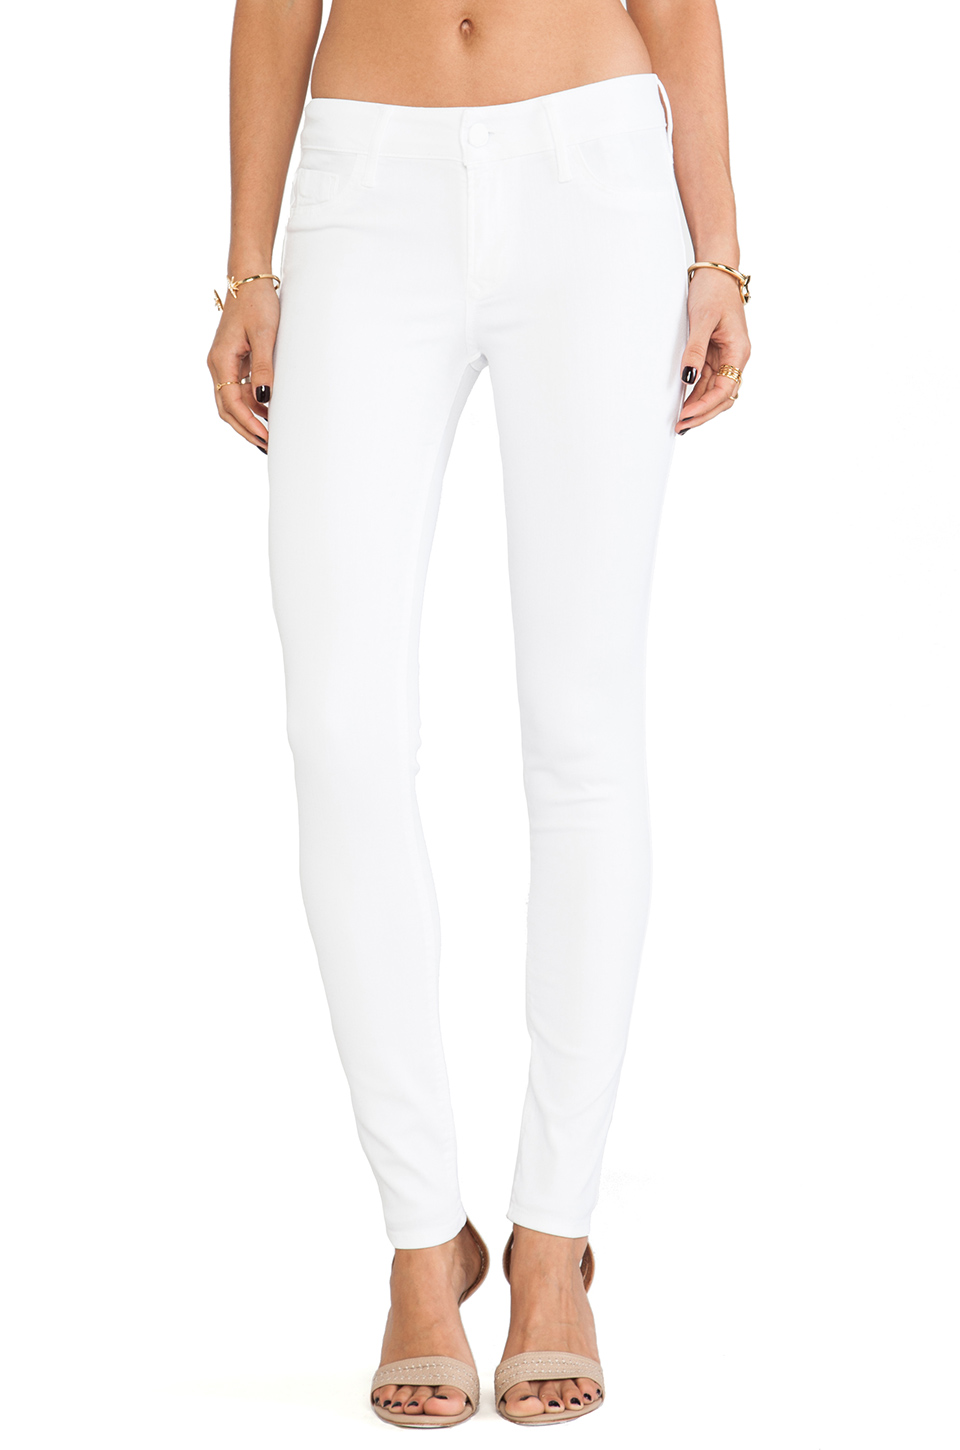 Black Orchid Mid Rise Skinny in Snow White | REVOLVE